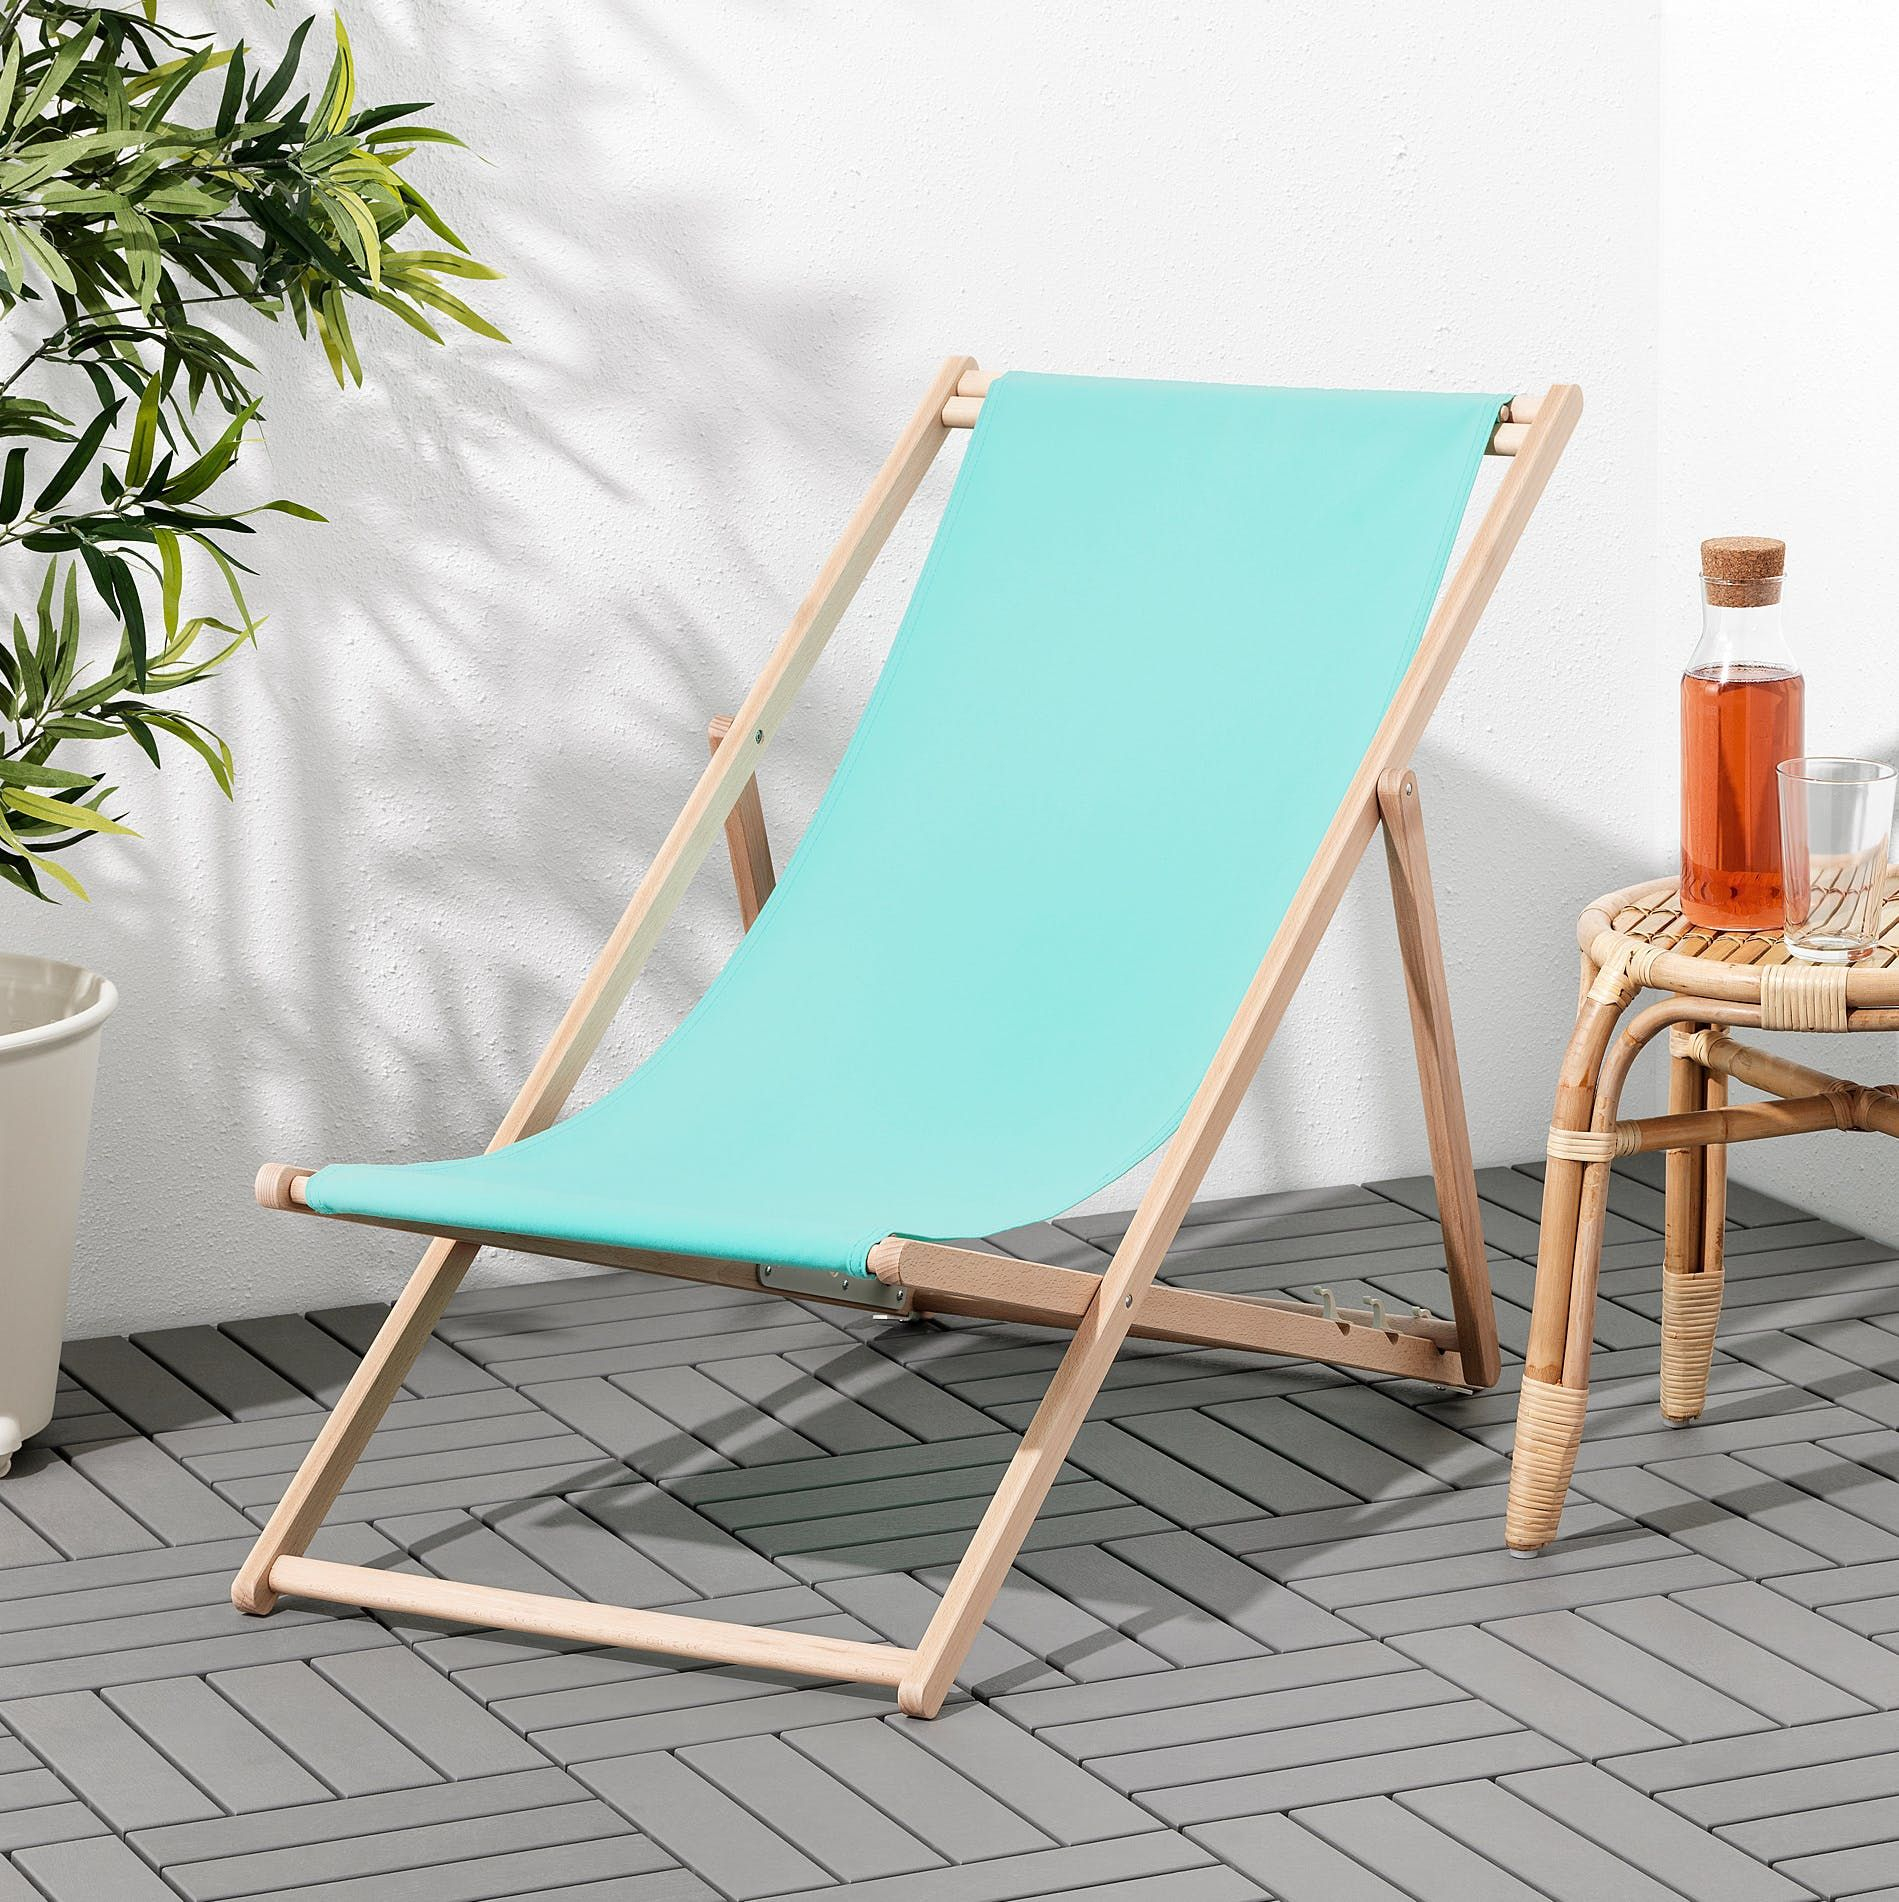 The Cutest Ikea Patio Items Under $100 You Need For Summer ... concernant Transat Jardin Ikea